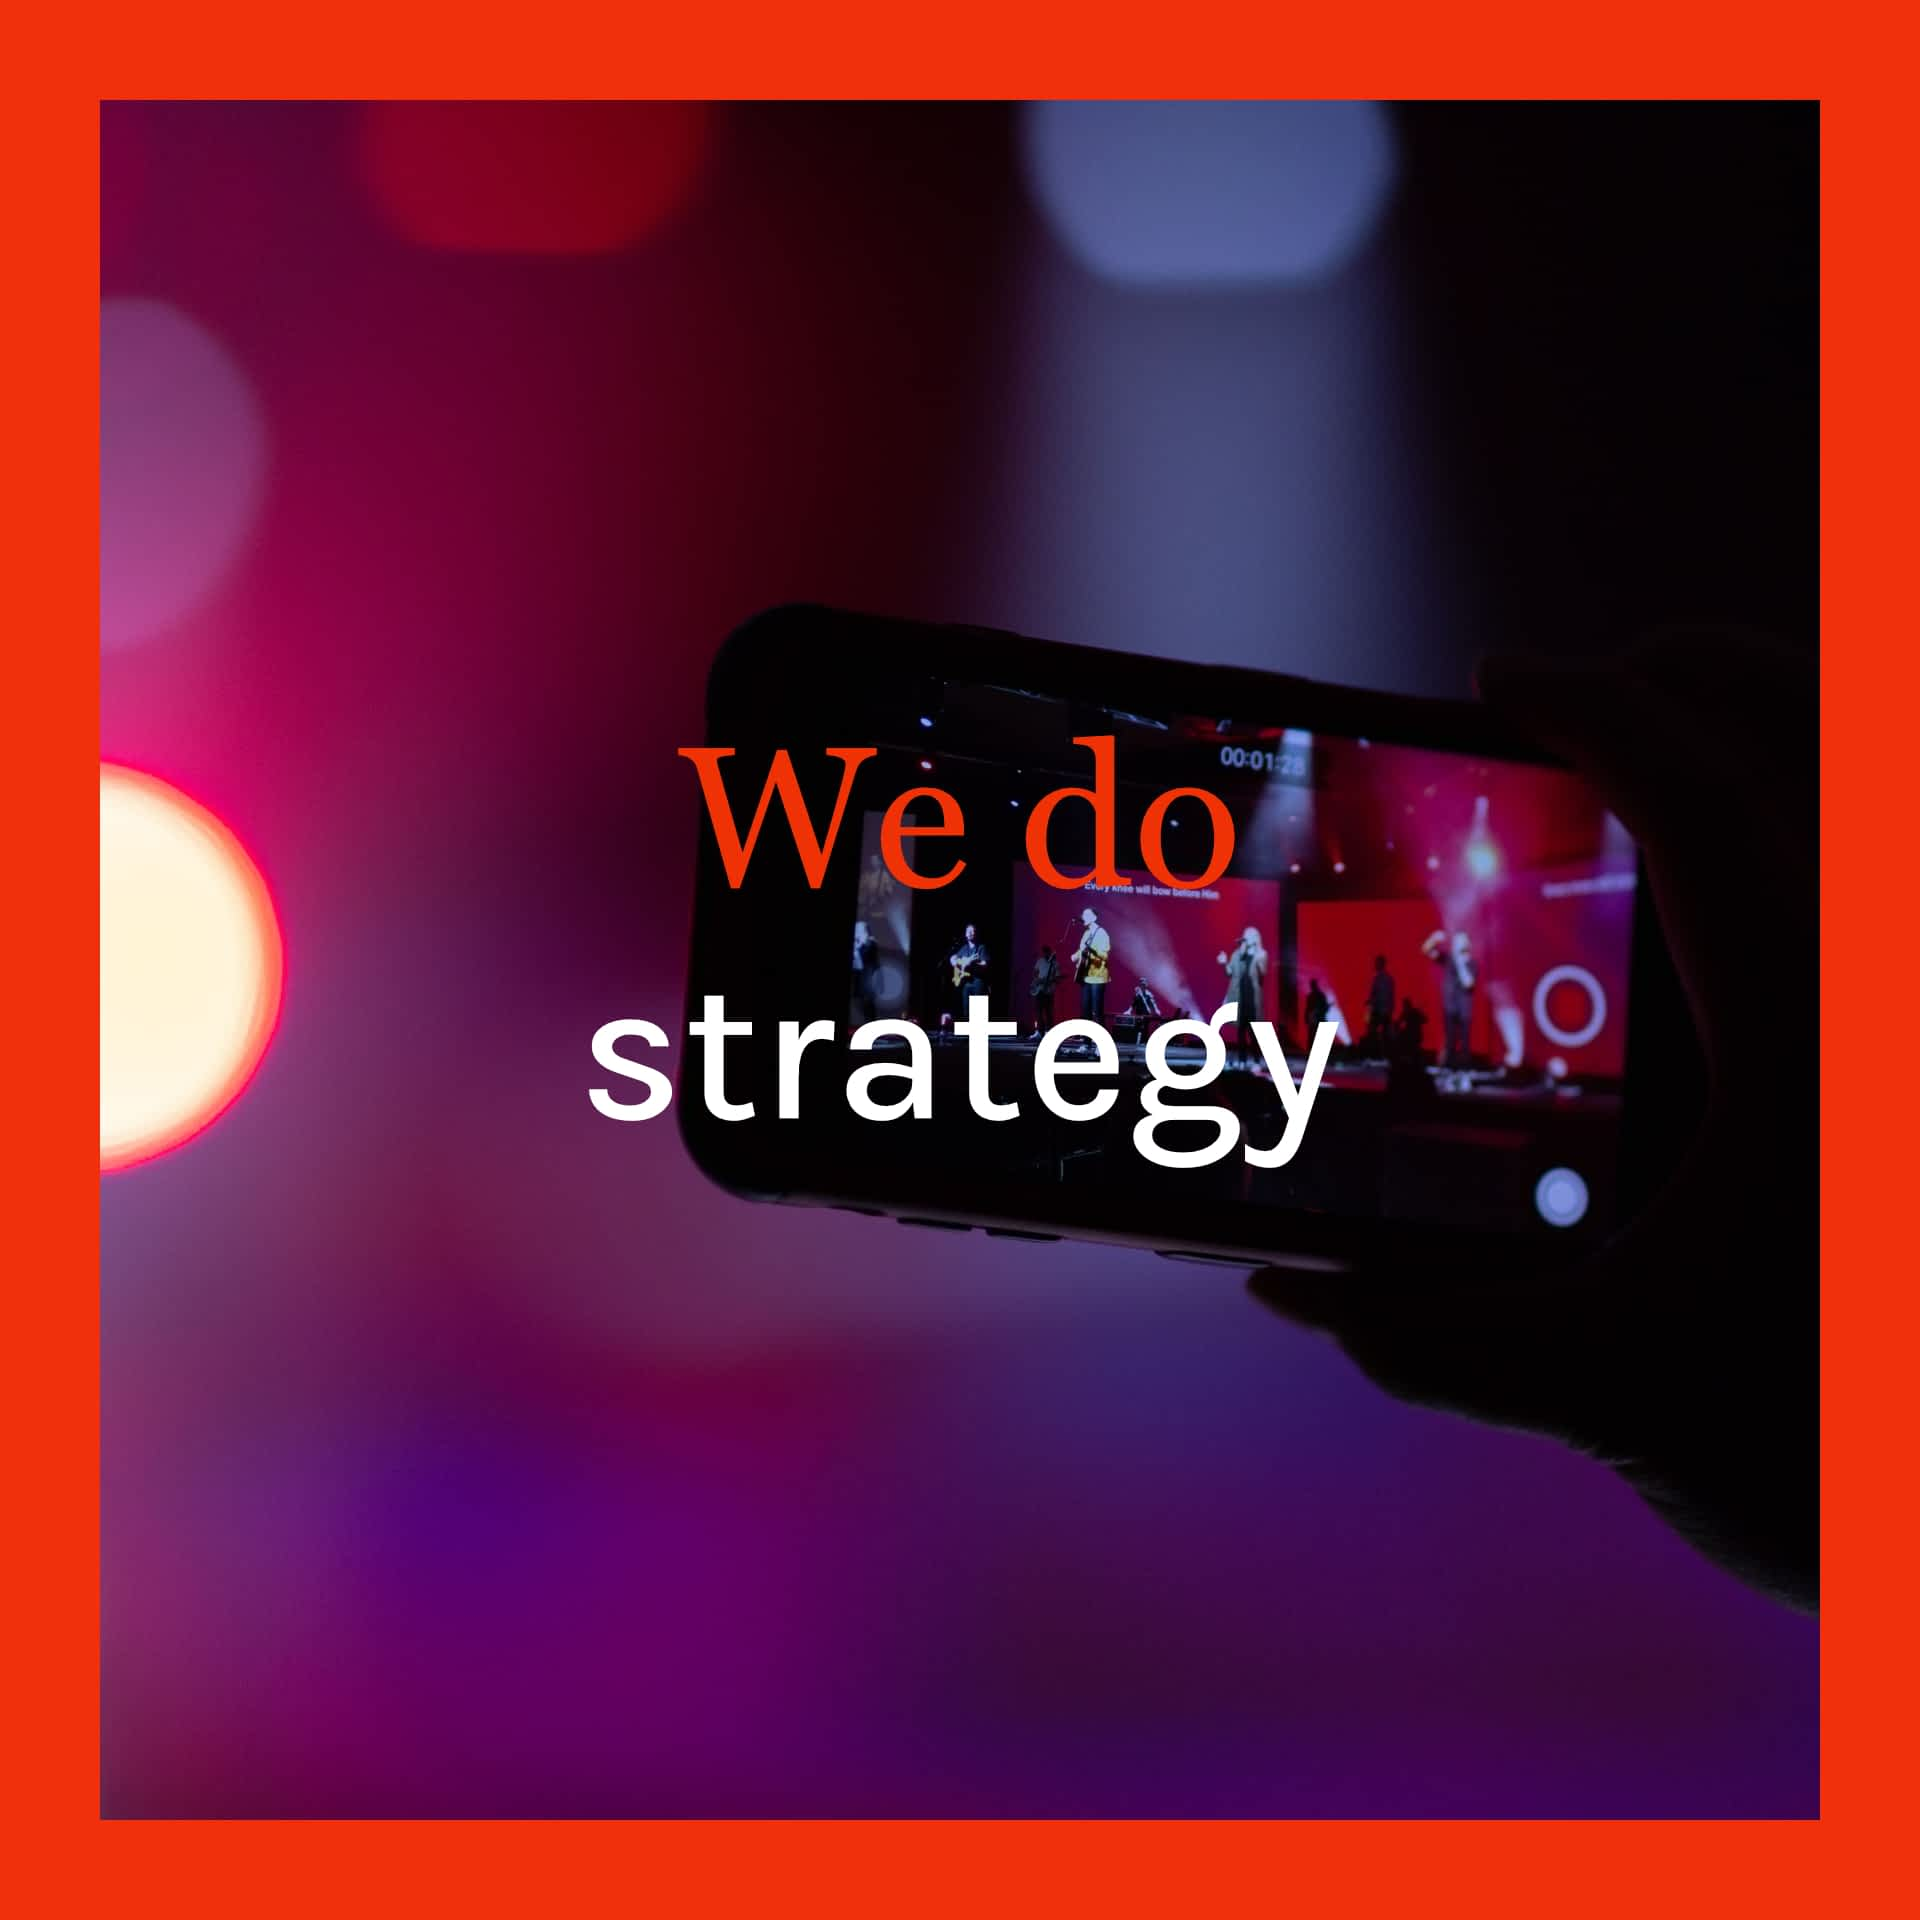 this image shows a guitar head and text we do strategy